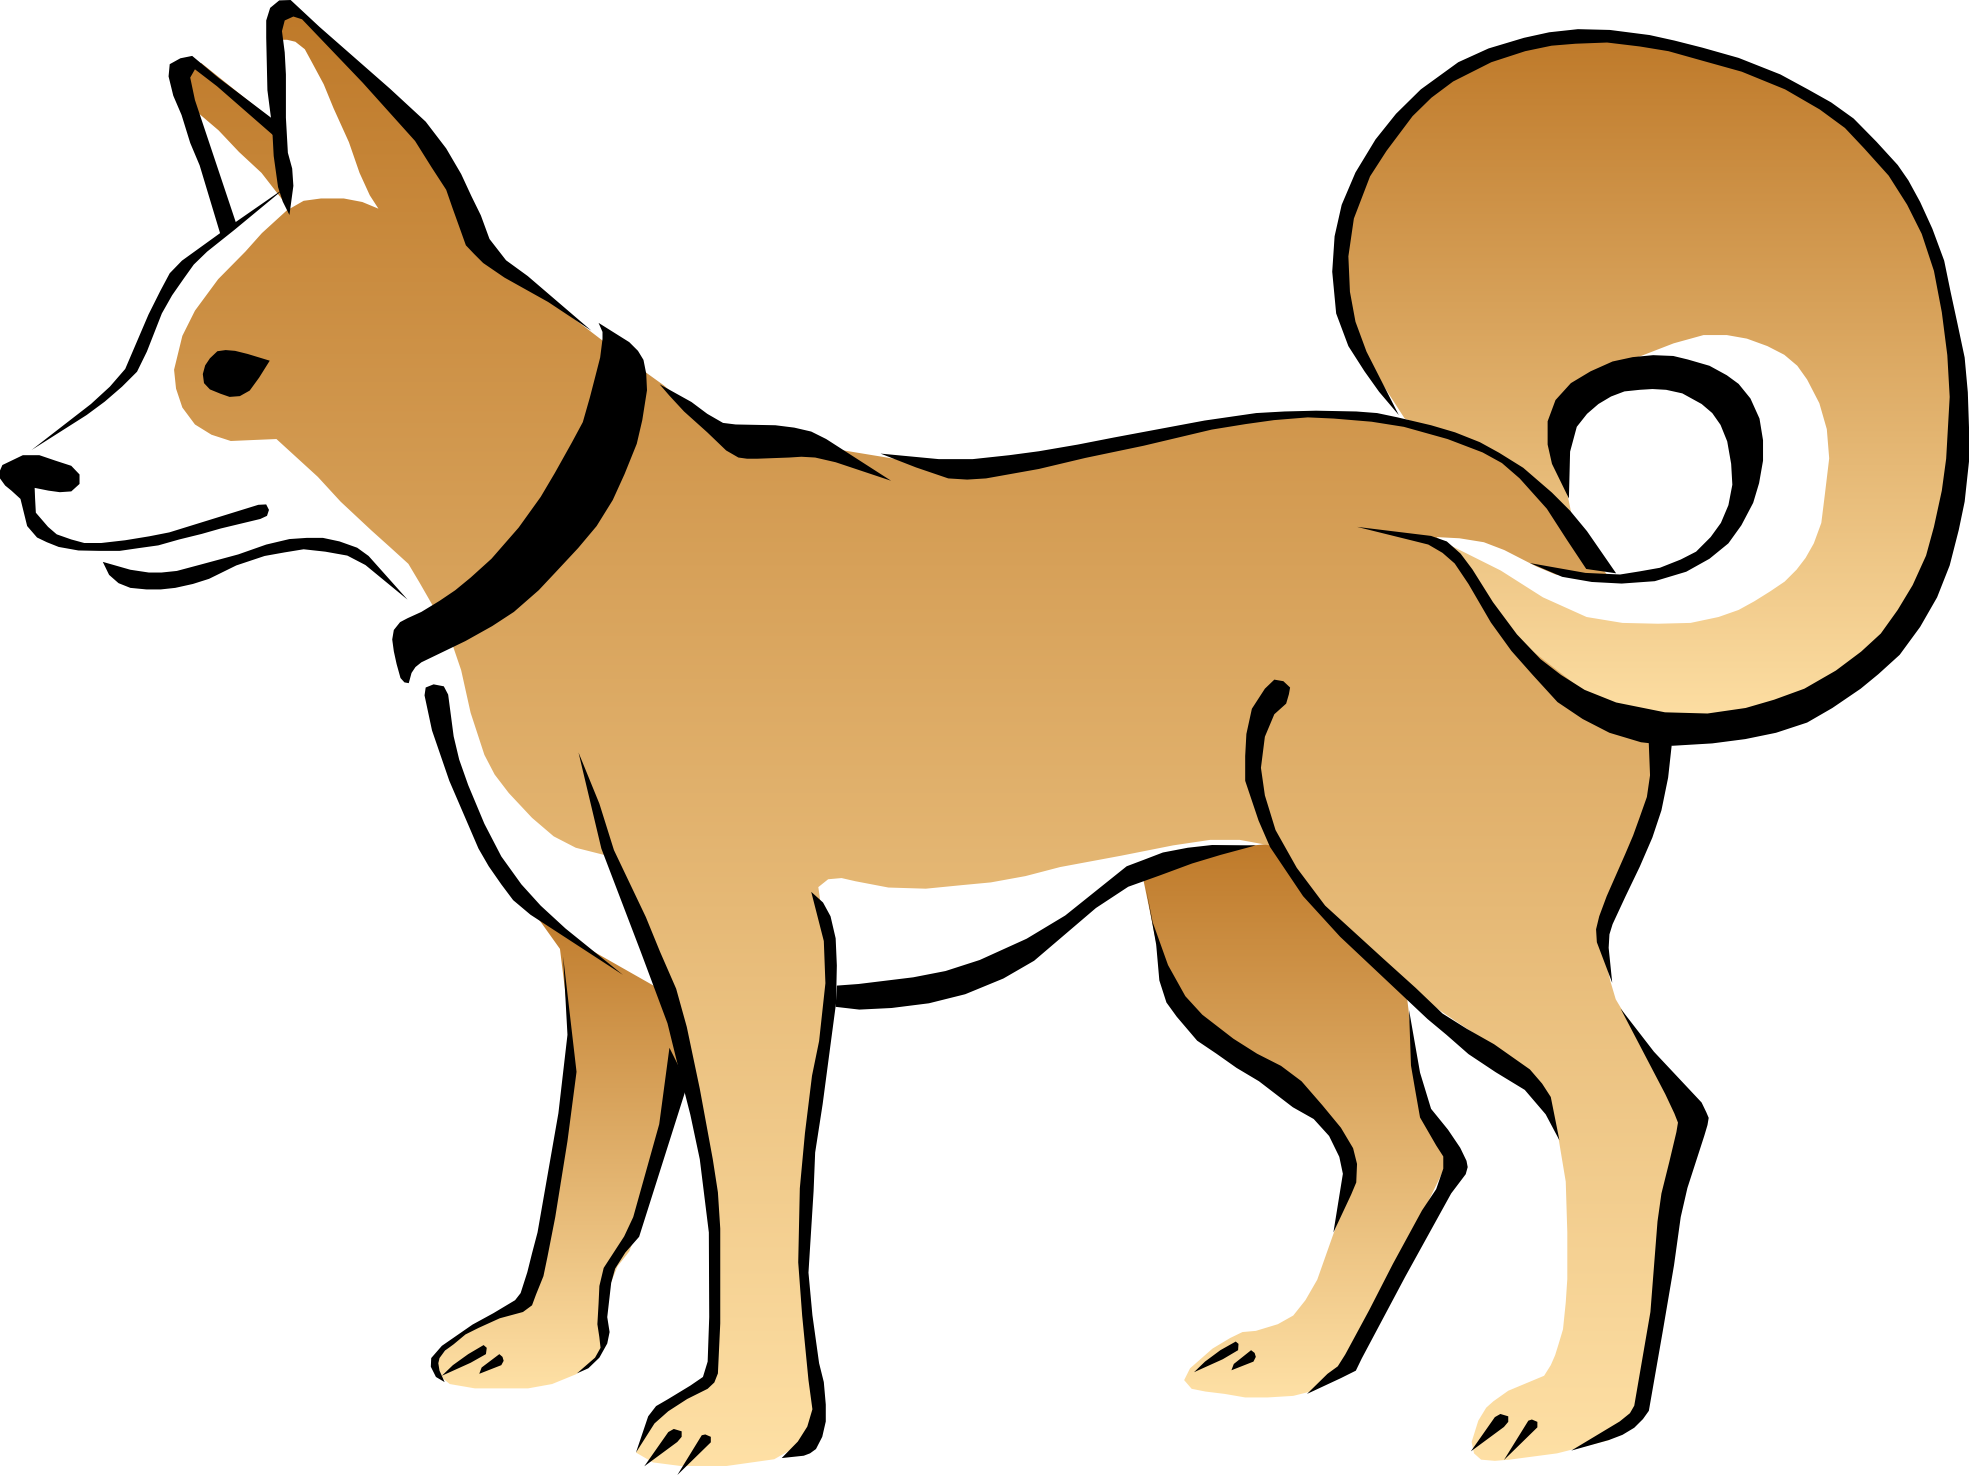 Dog sitting side view clipart clip art library Cute Dog And Cat Clip Art | Clipart Panda - Free Clipart Images ... clip art library